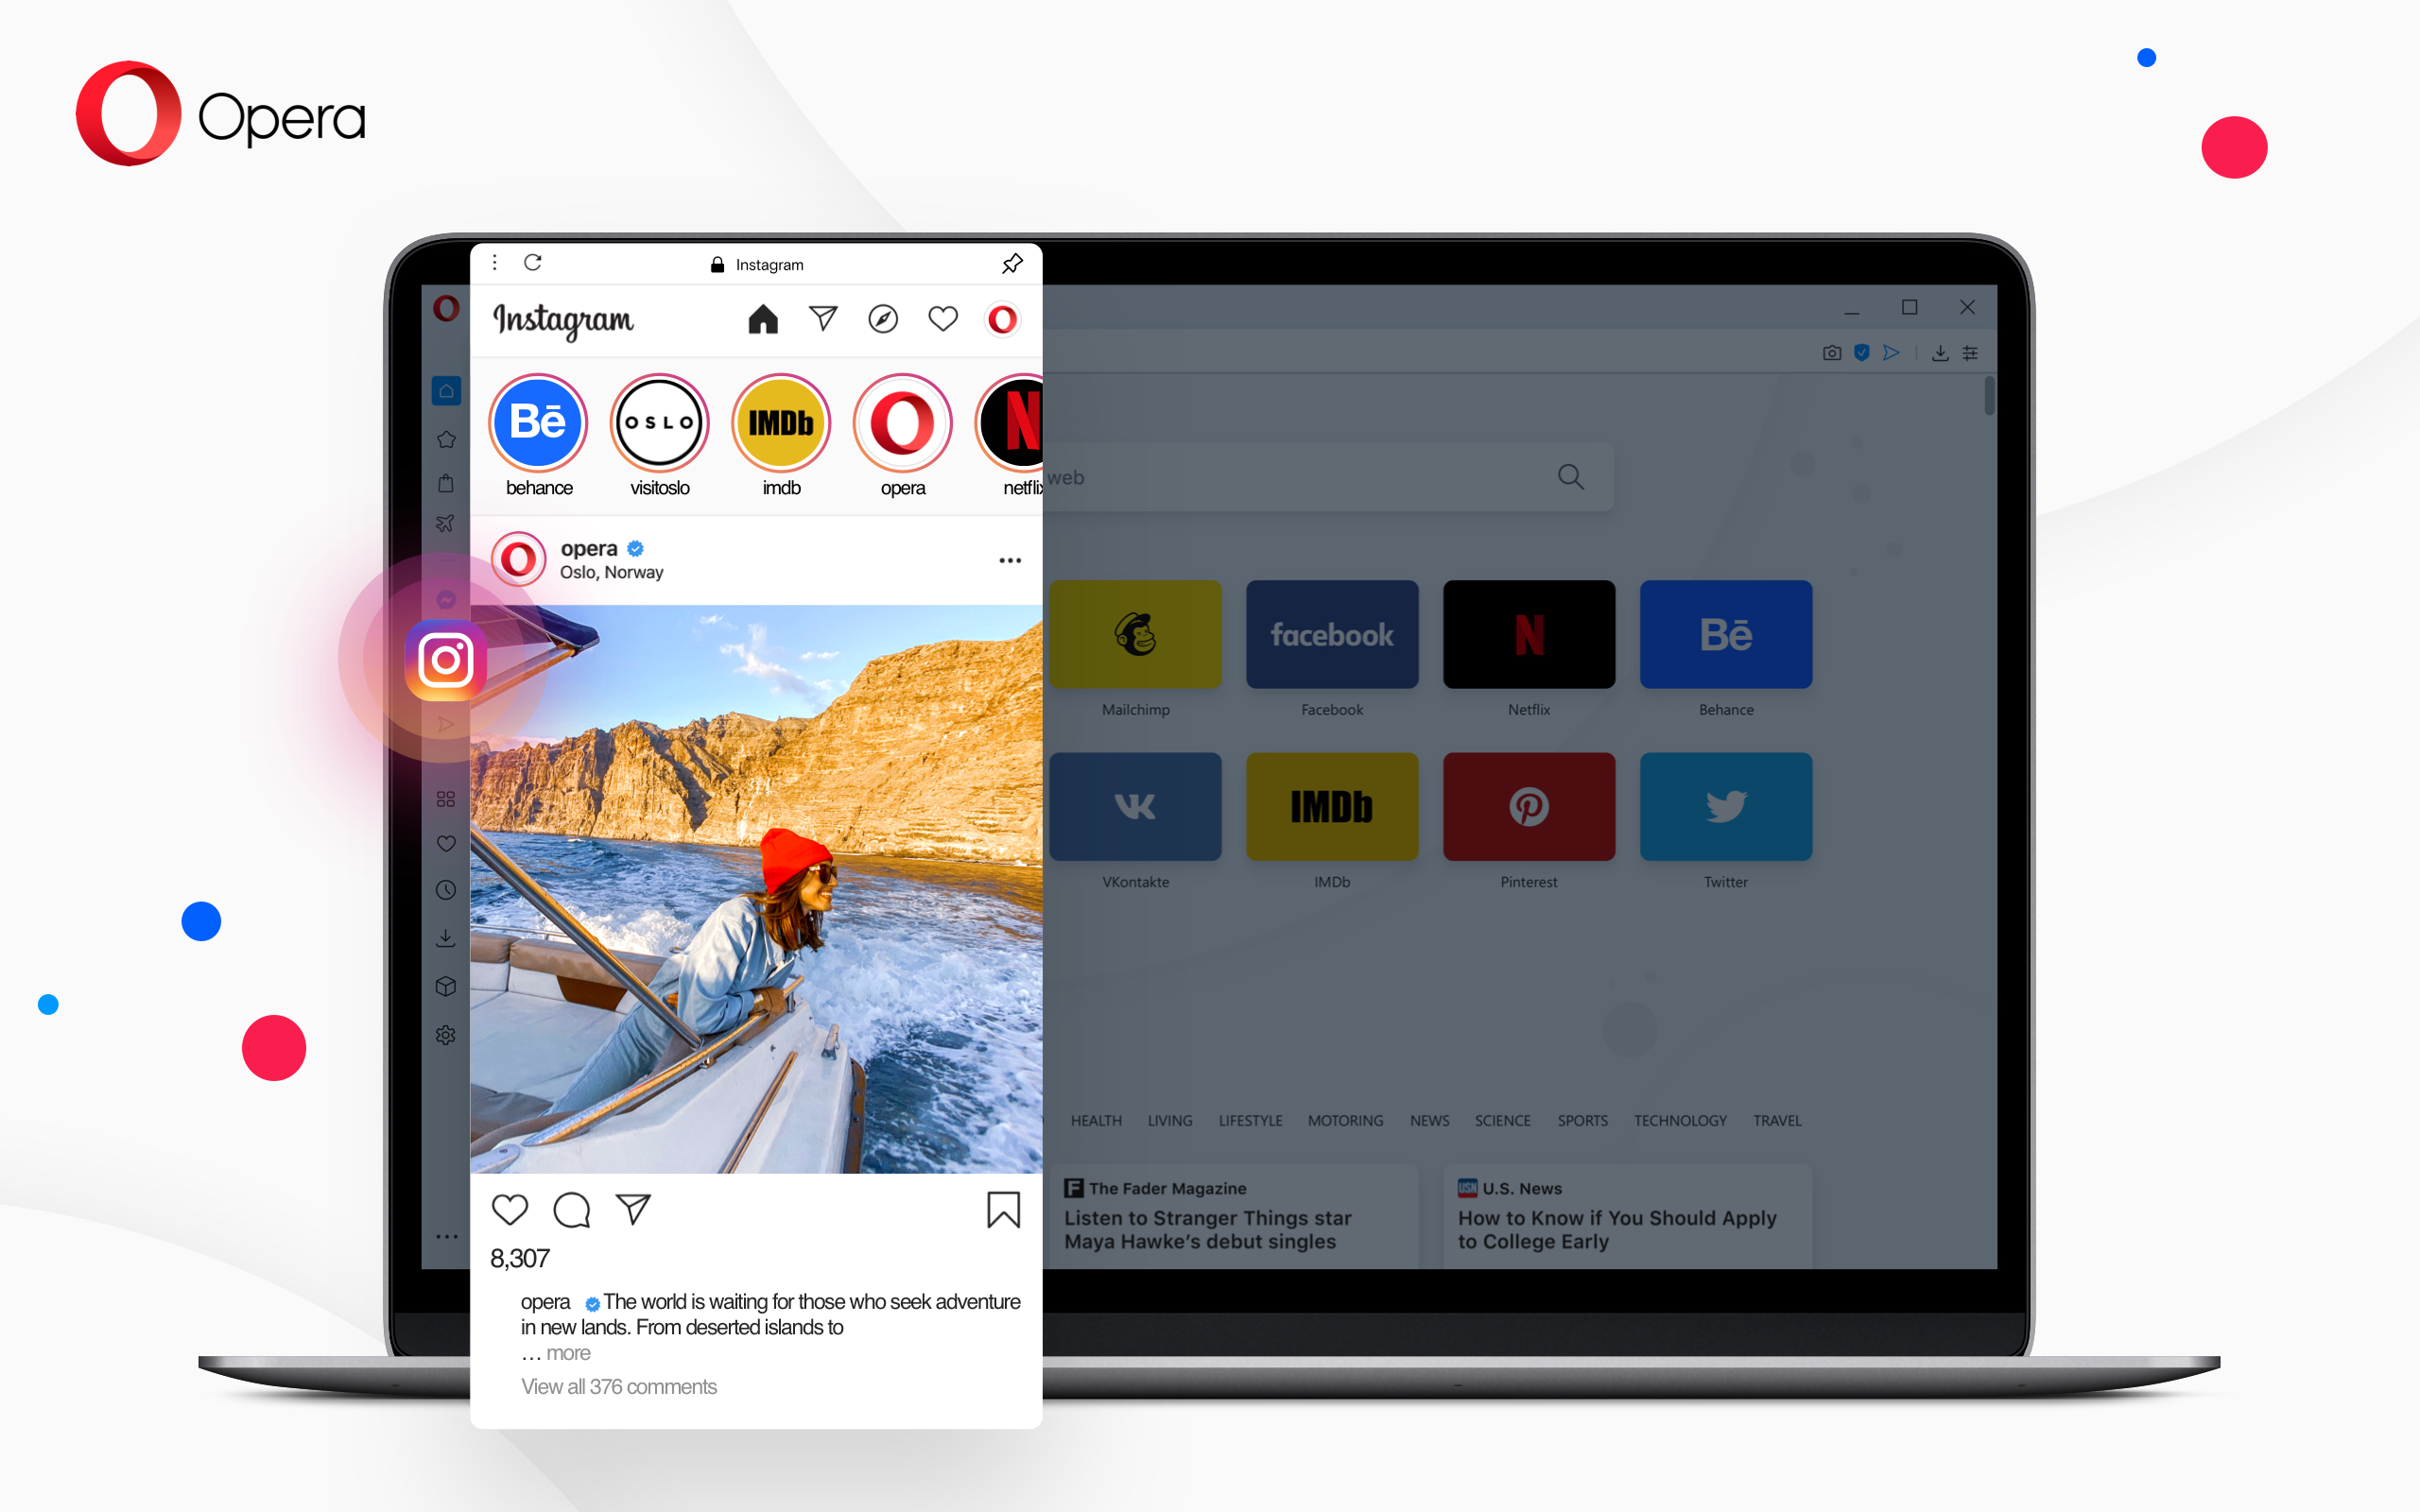 Opera instagram built in desktop